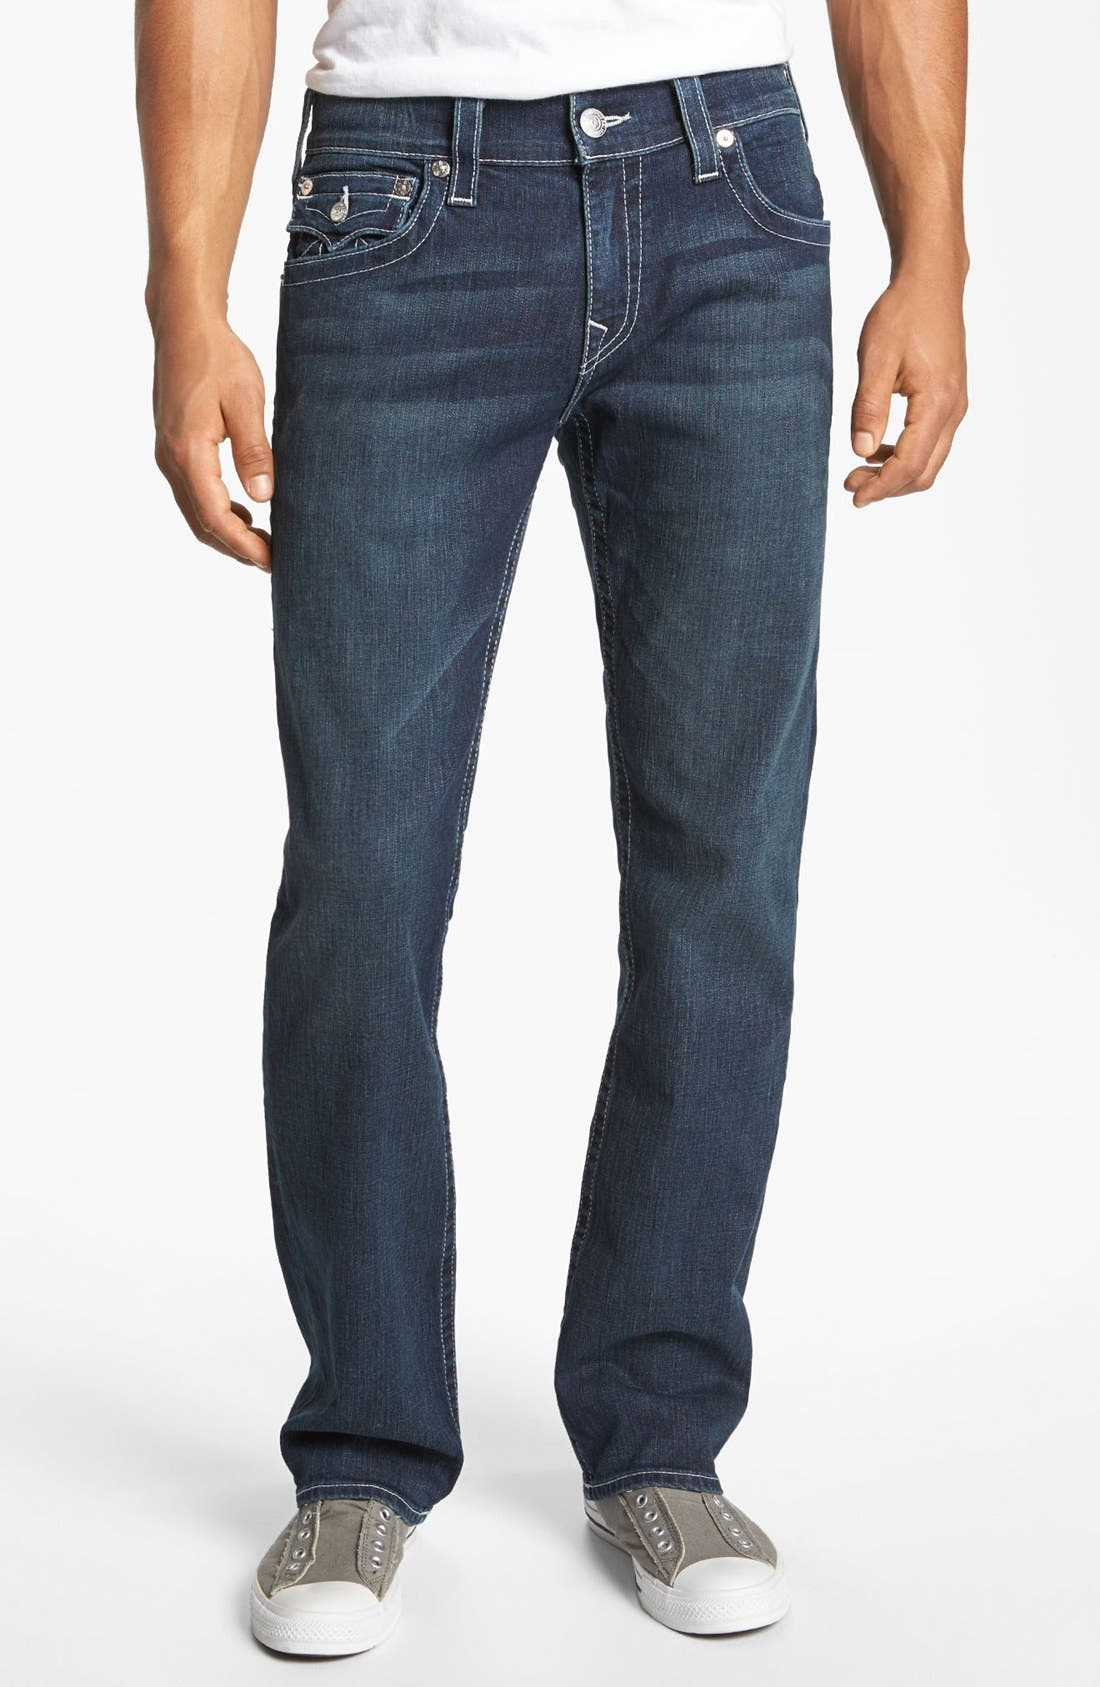 Alternate Image 2  - True Religion Brand Jeans 'Ricky' Stretch Relaxed Fit Jeans (Monte)